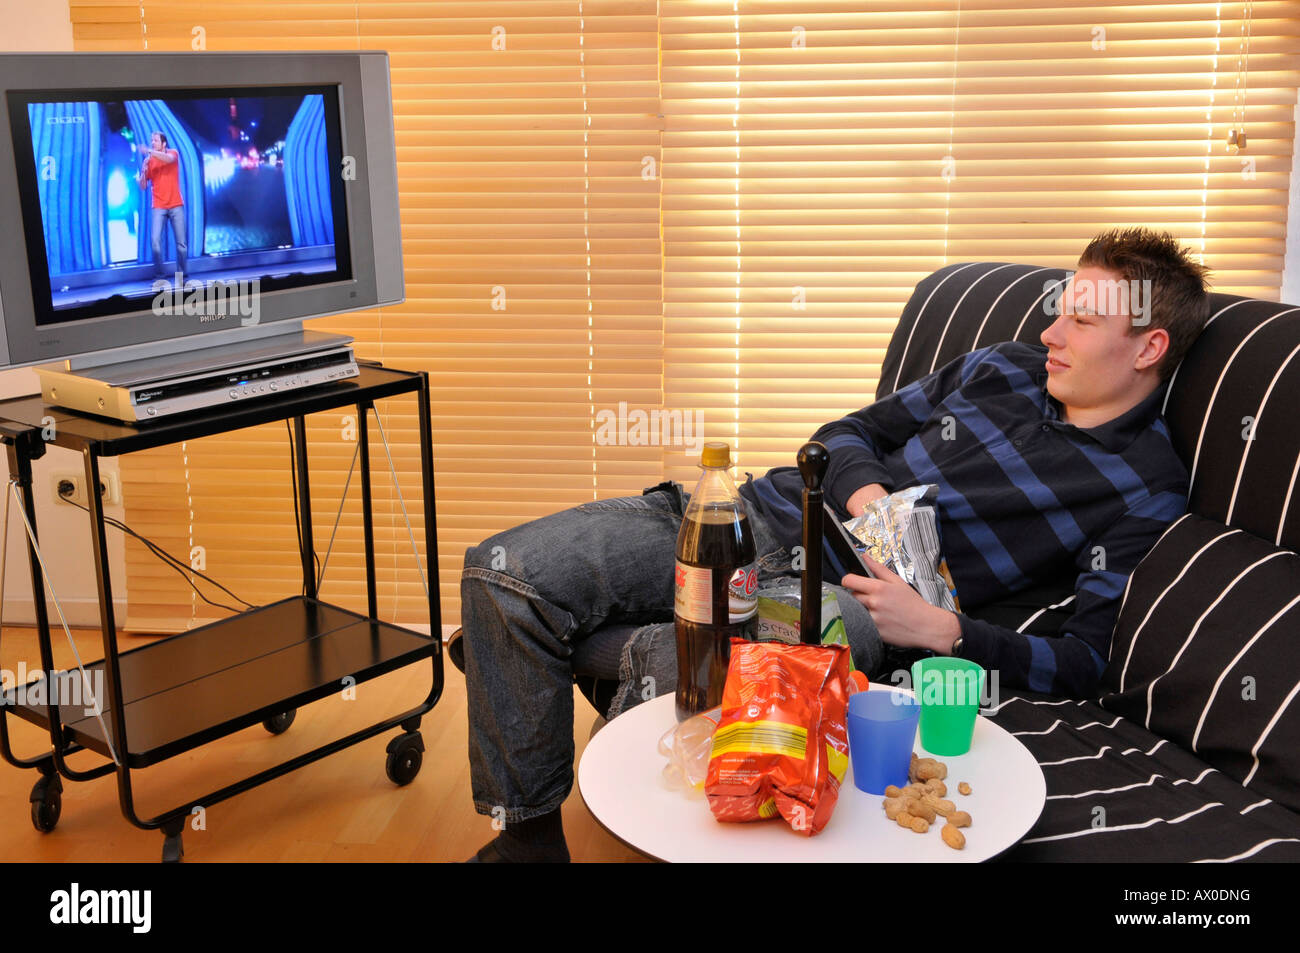 Teenager Sitting On Couch Watching Tv Stock Photo 16688139 Alamy